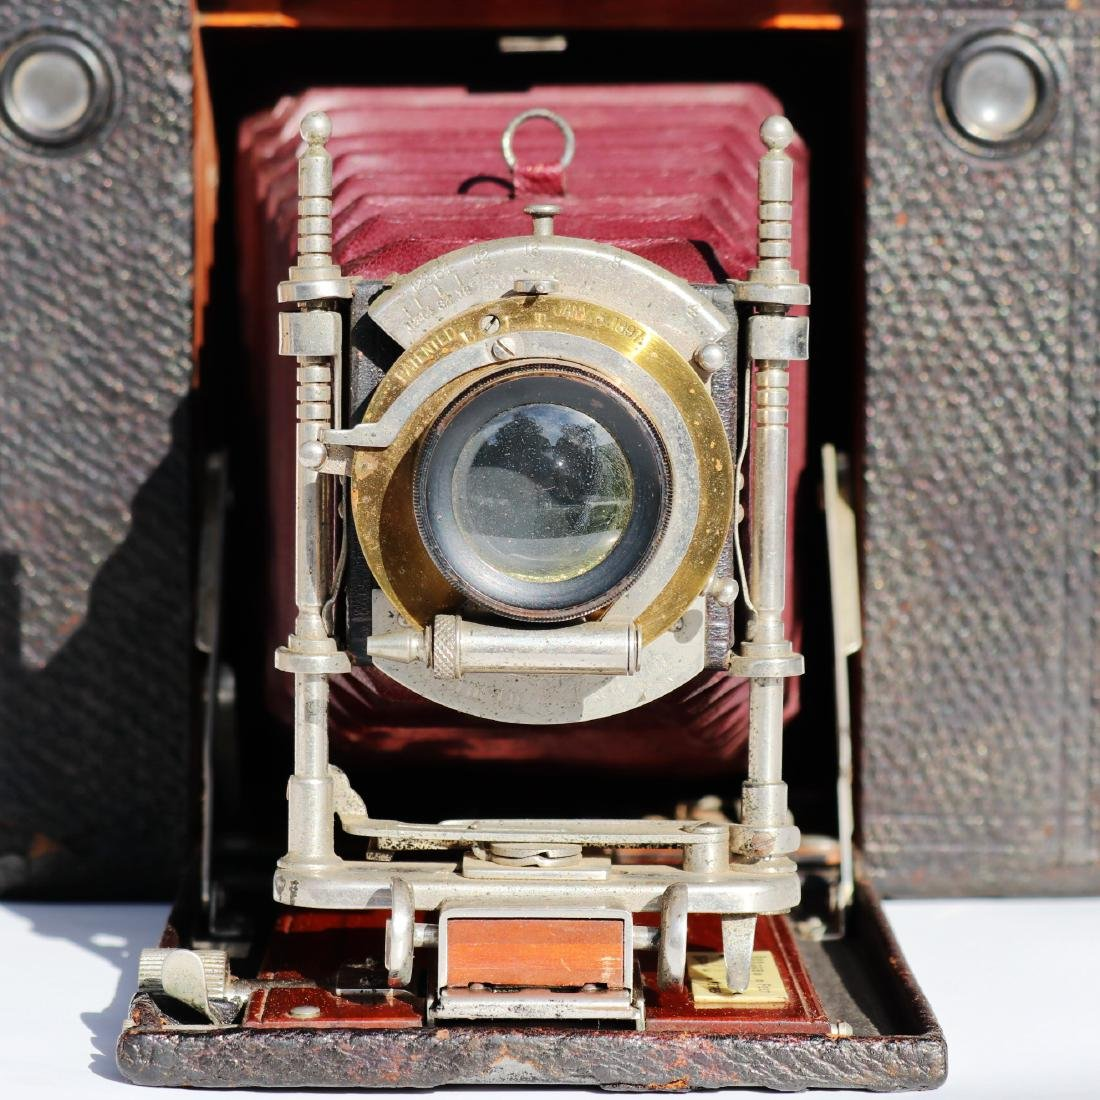 No. 3 Cartridge Kodak Camera, 1900 - 3